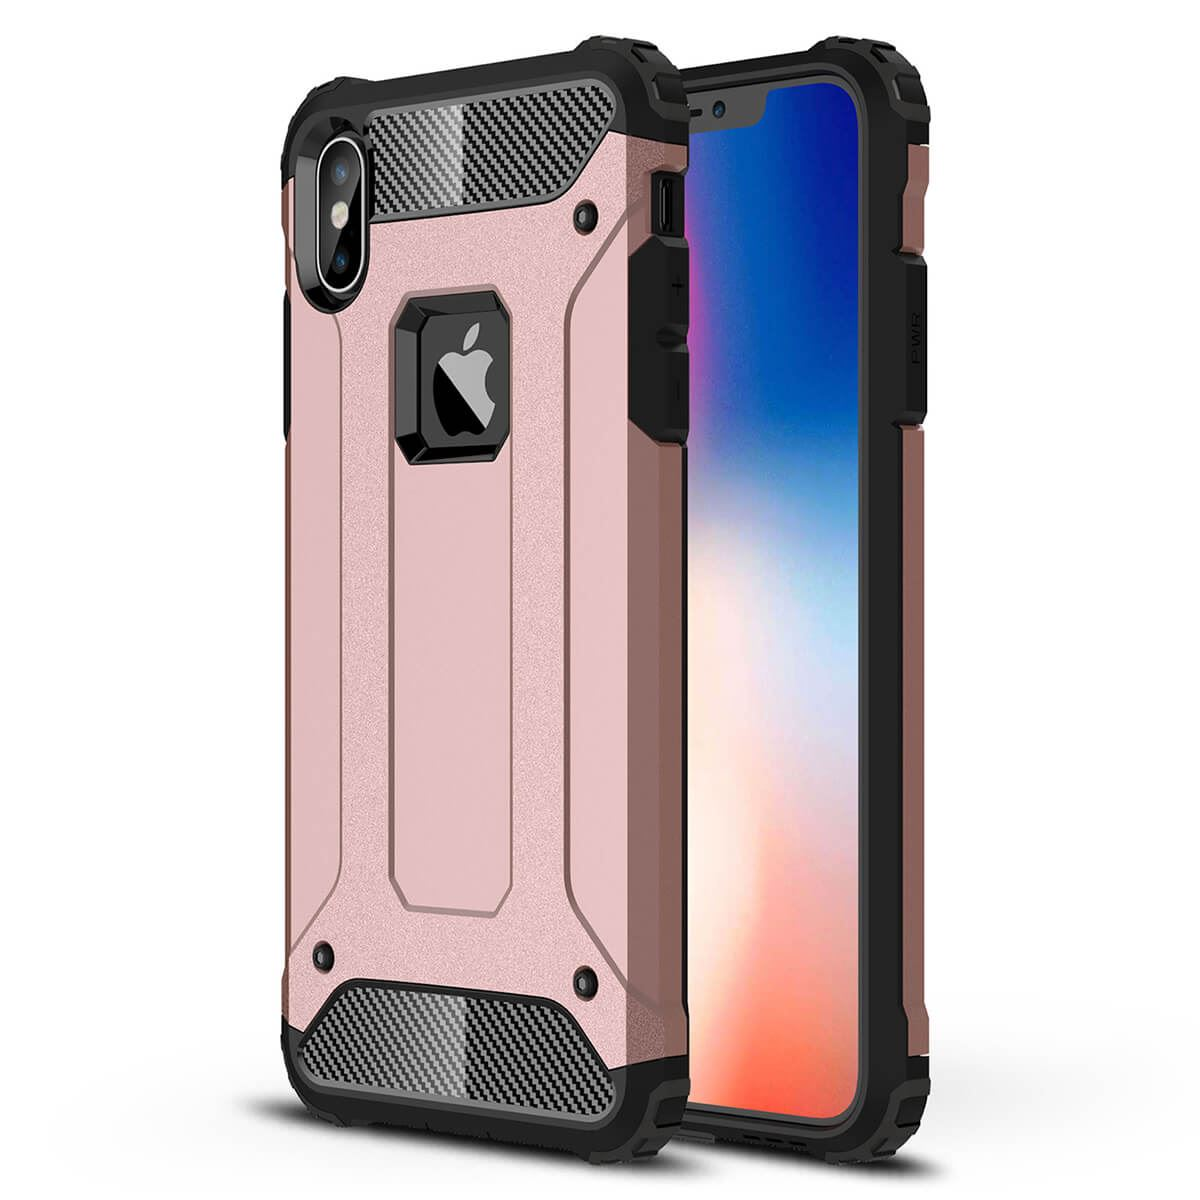 Shockproof-Bumper-Case-For-Apple-iPhone-10-X-8-7-Plus-6s-5s-Hybrid-Armor-Rugged thumbnail 22